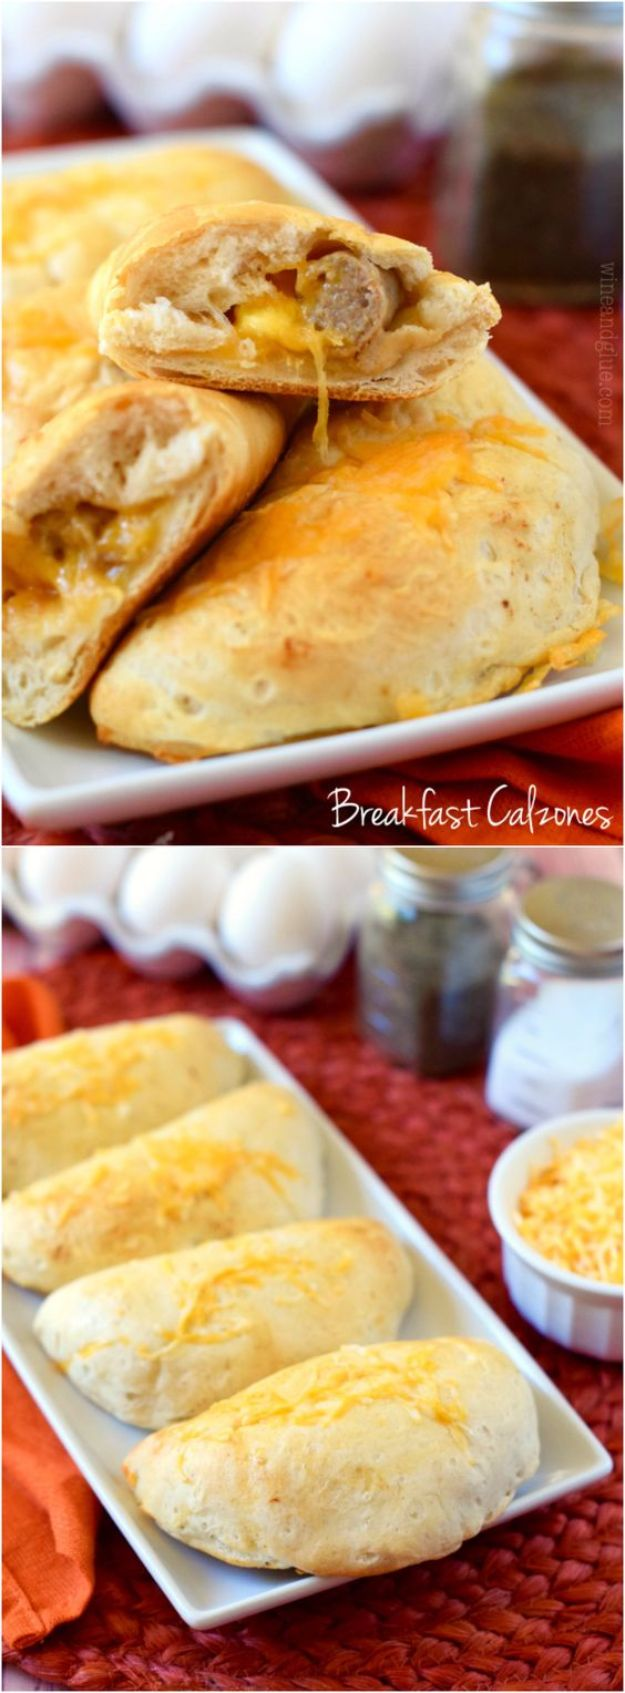 Best Canned Biscuit Recipes - Cool DIY Recipe Ideas You Can Make With A Can of Biscuits - Easy Breakfast, Lunch, Dinner and Desserts You Can Make From Pillsbury Pull Apart Biscuits - Garlic, Sour Cream, Ground Beef, Sweet and Savory, Ideas with Cheese - Delicious Meals on A Budget With Step by Step Tutorials